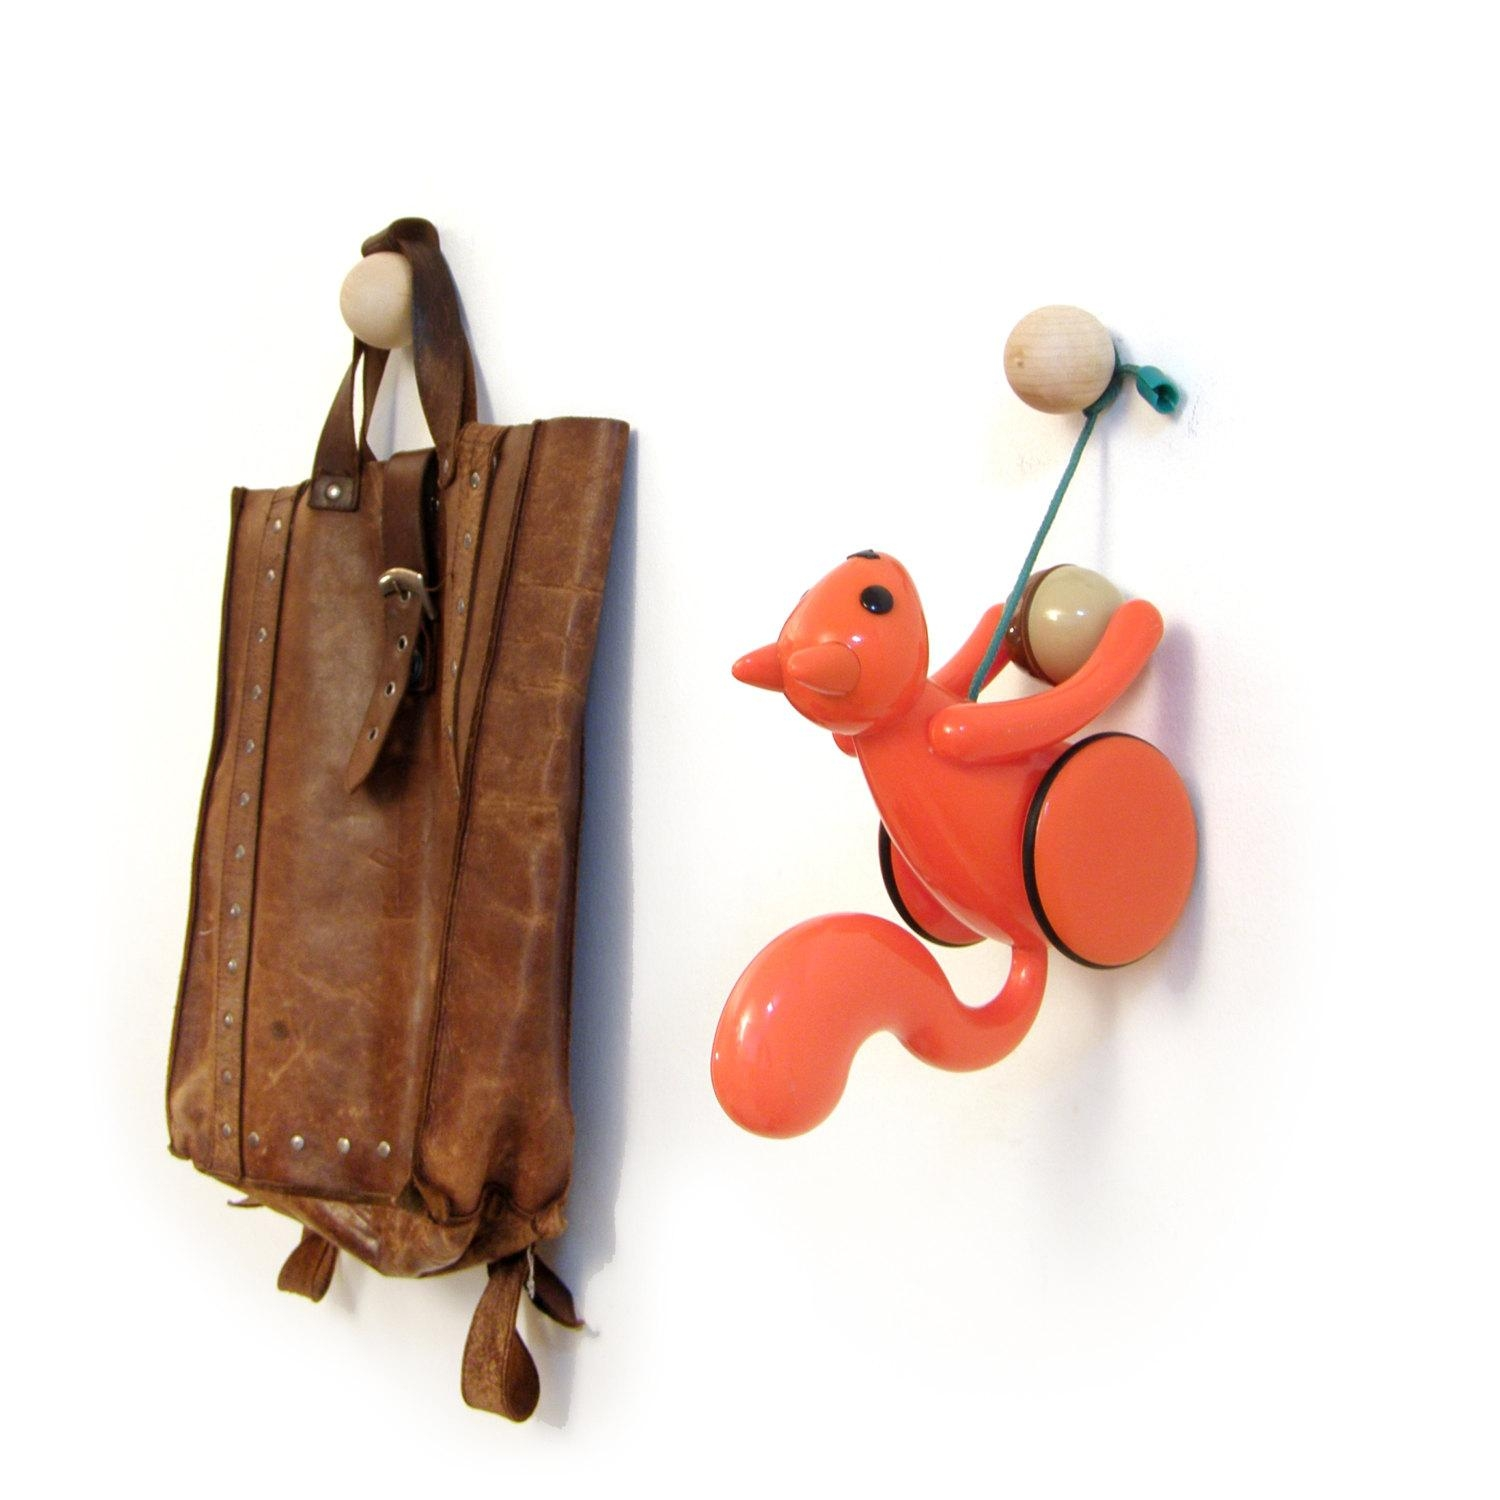 Wall Mounted Coat Hooks Walmart Com Browse Related Products With Regard To Wall Art Coat Hooks (Image 19 of 20)